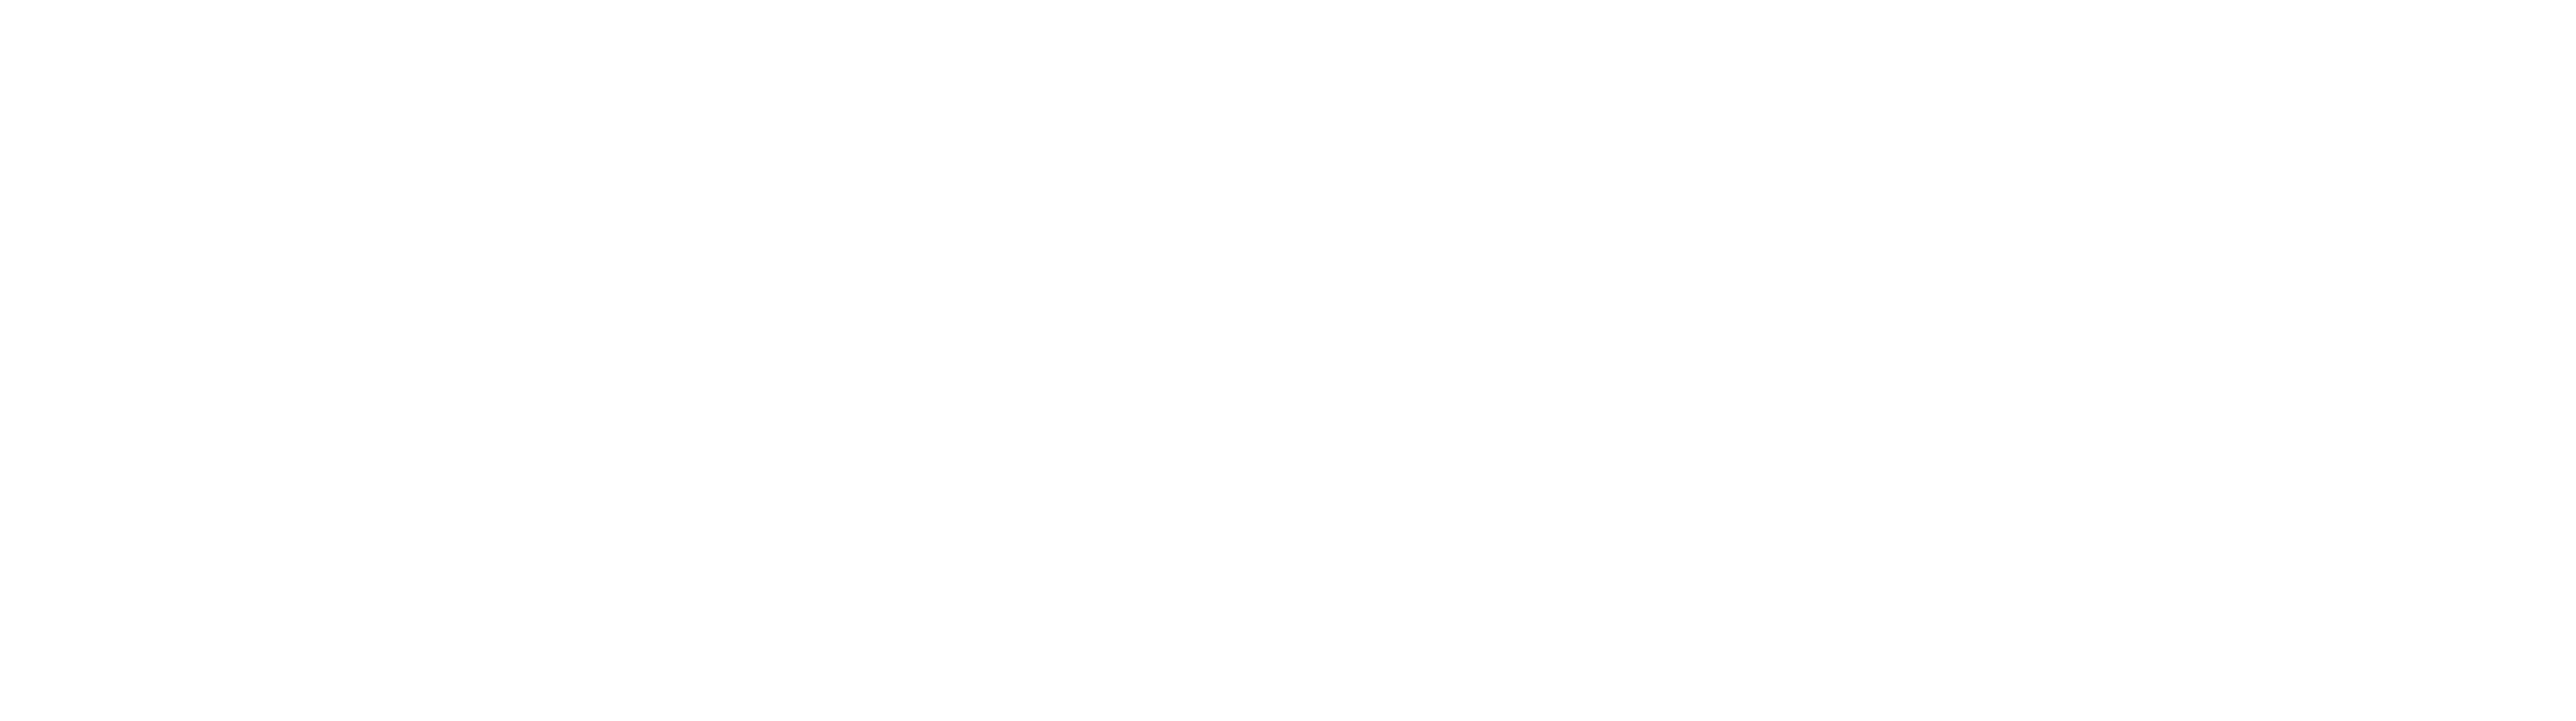 Westbrook's Flower Shoppe - Flower Delivery in Wallaceburg, ON